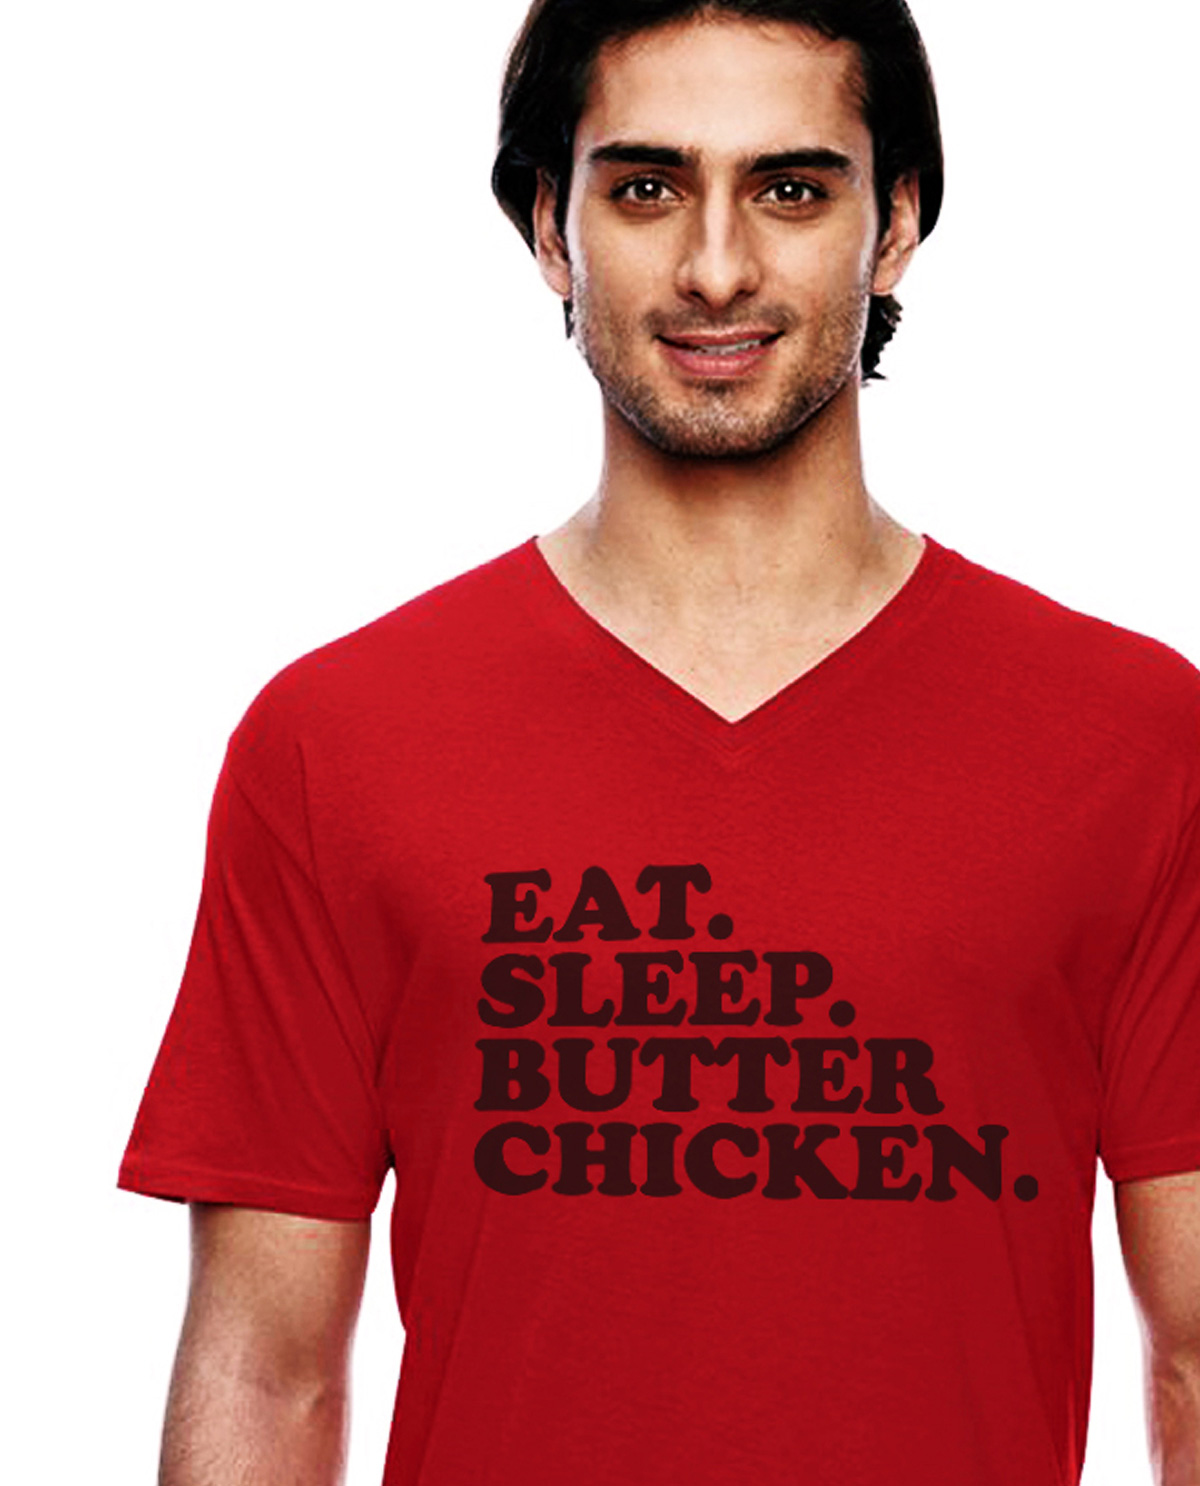 Eat. Sleep. Butter Chicken. Red V Neck graphic design t.shirt being worn by South Asian male model. South Asian Desi Themed Graphic Design t.shirts by Brown Man Clothing Co.